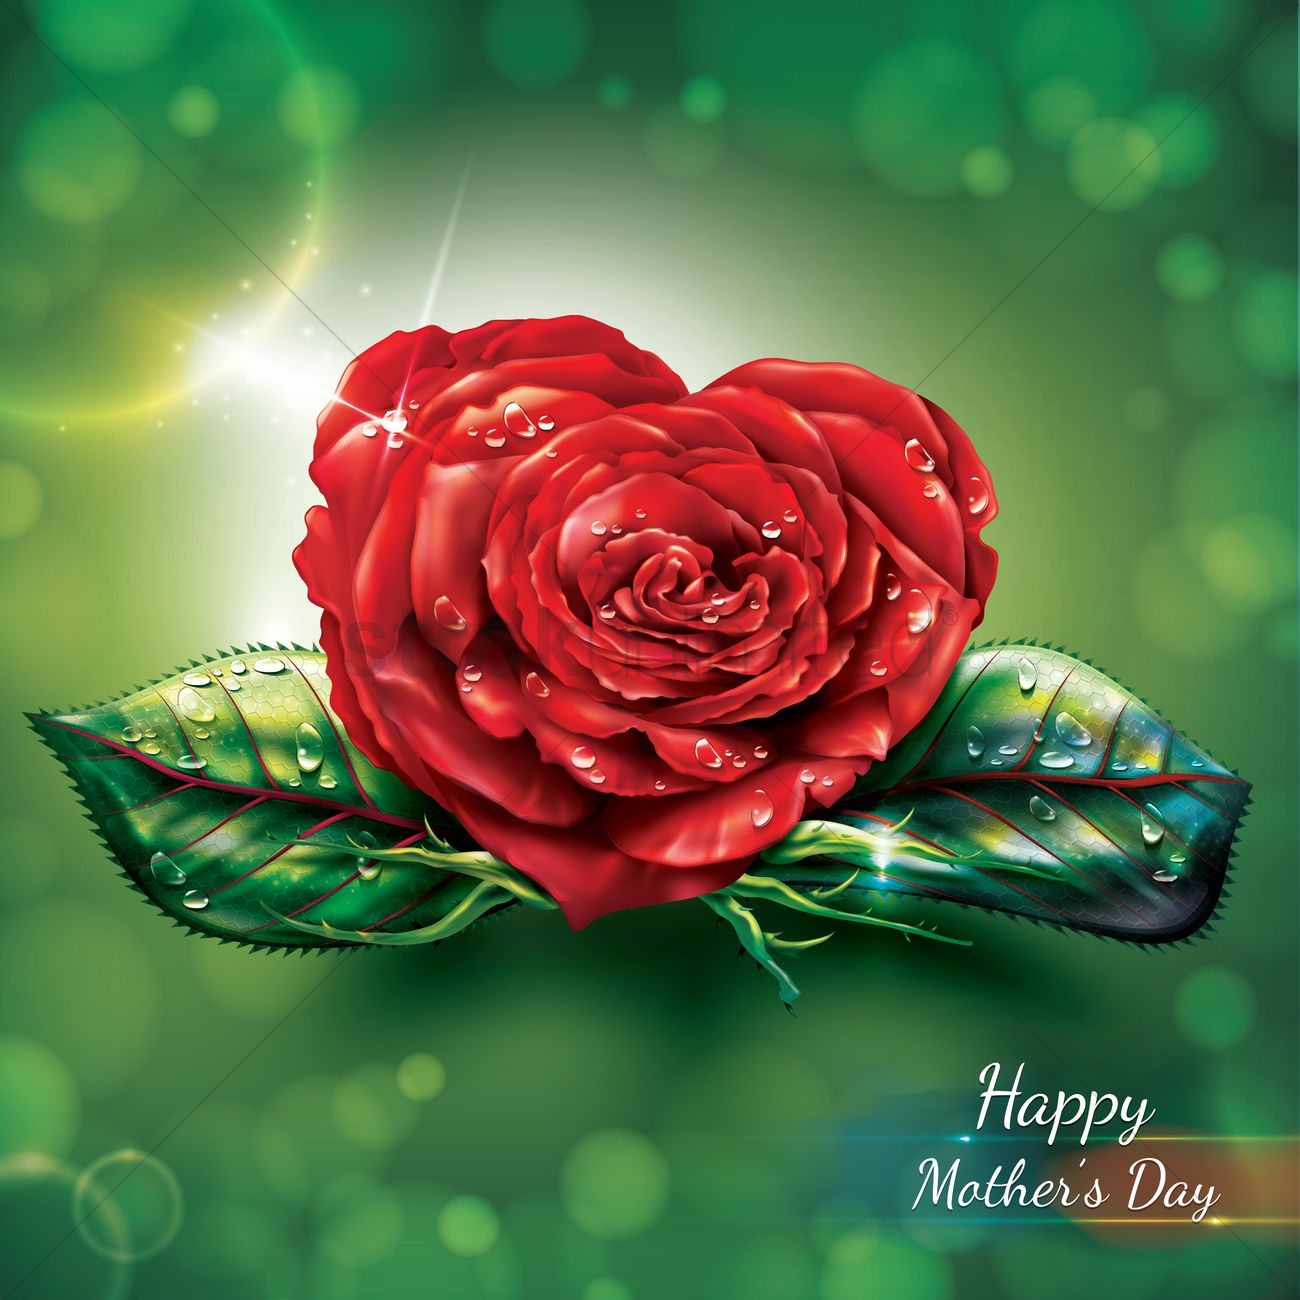 Happy mothers day card with rose Vector Image - 1810976 ...